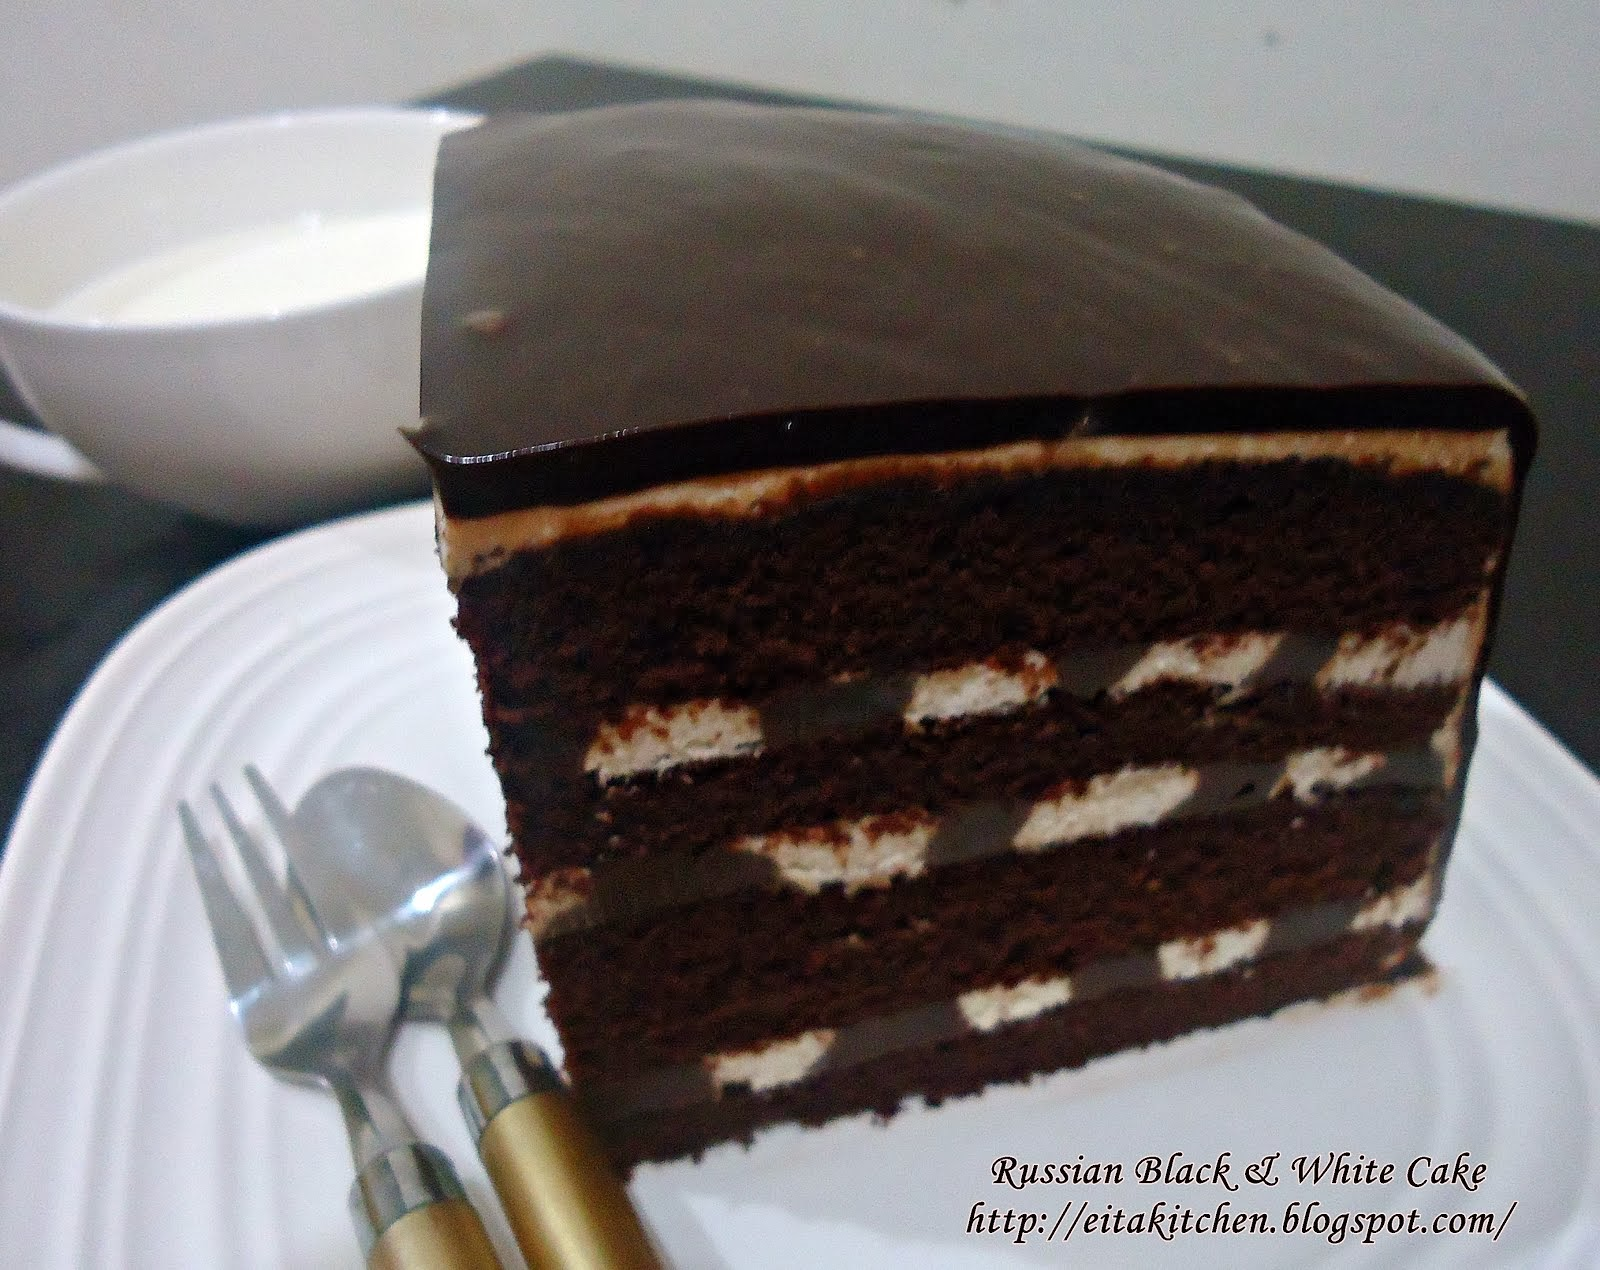 RUSSIAN BLACK & WHITE CAKE